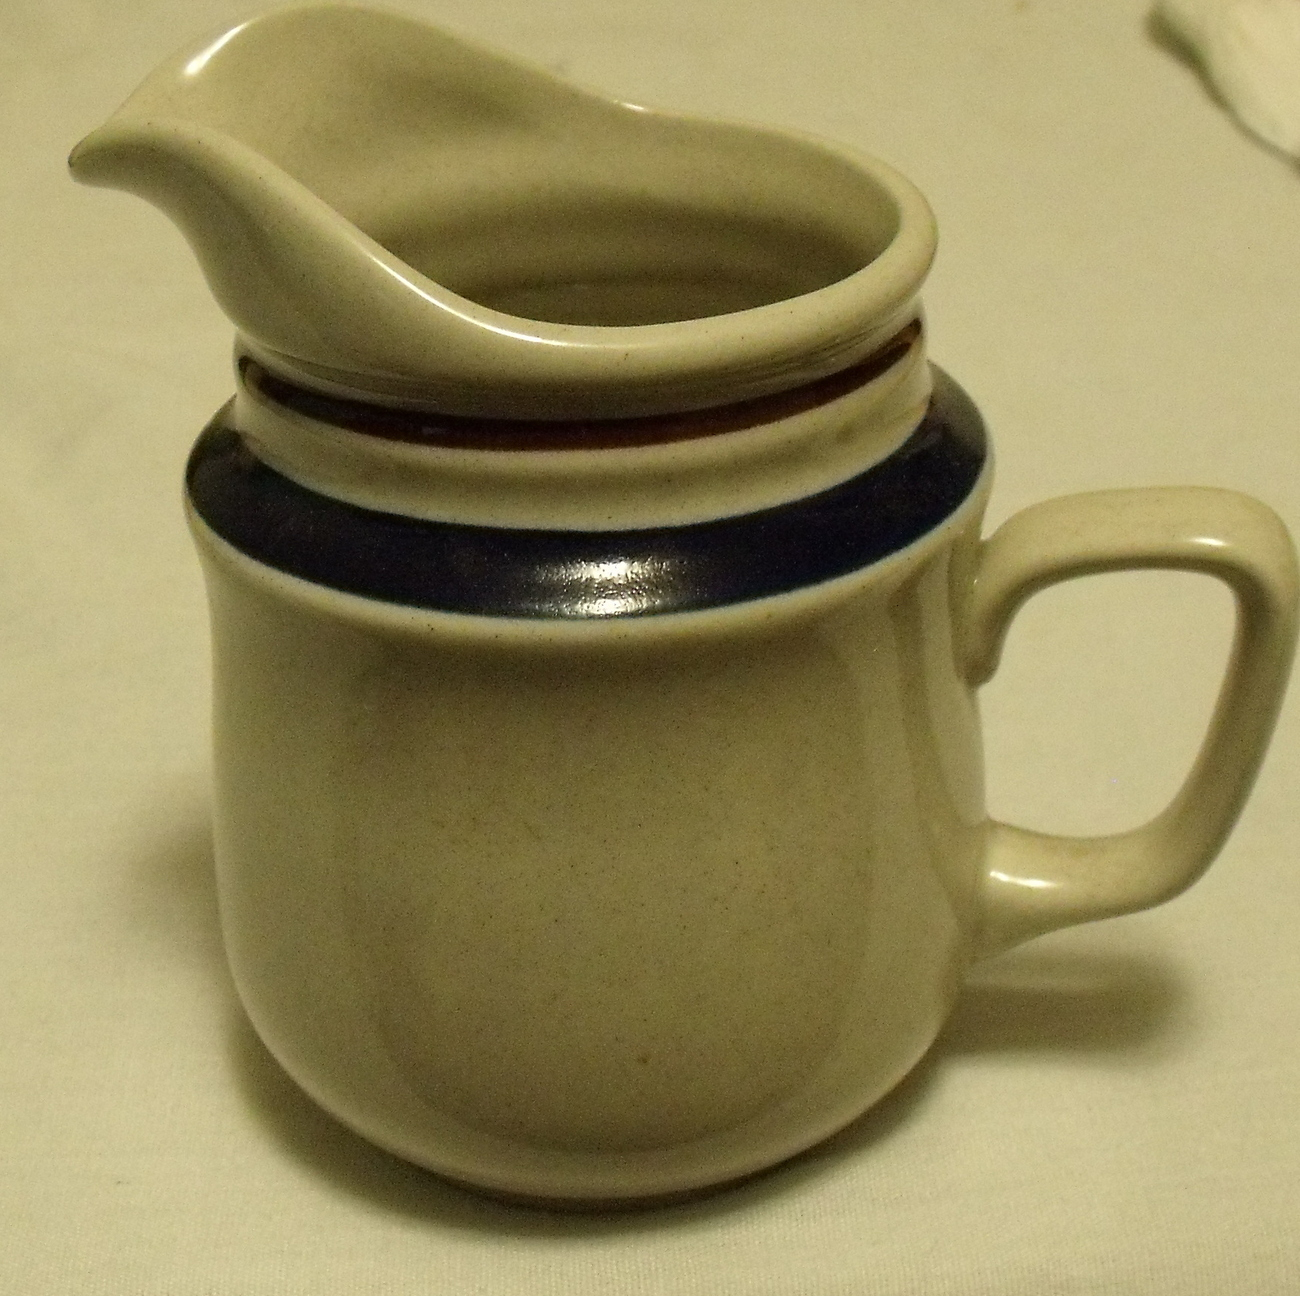 Chateau by Yamaka Hand Painted Stoneware Contemporary Colbalt Blue Creamer